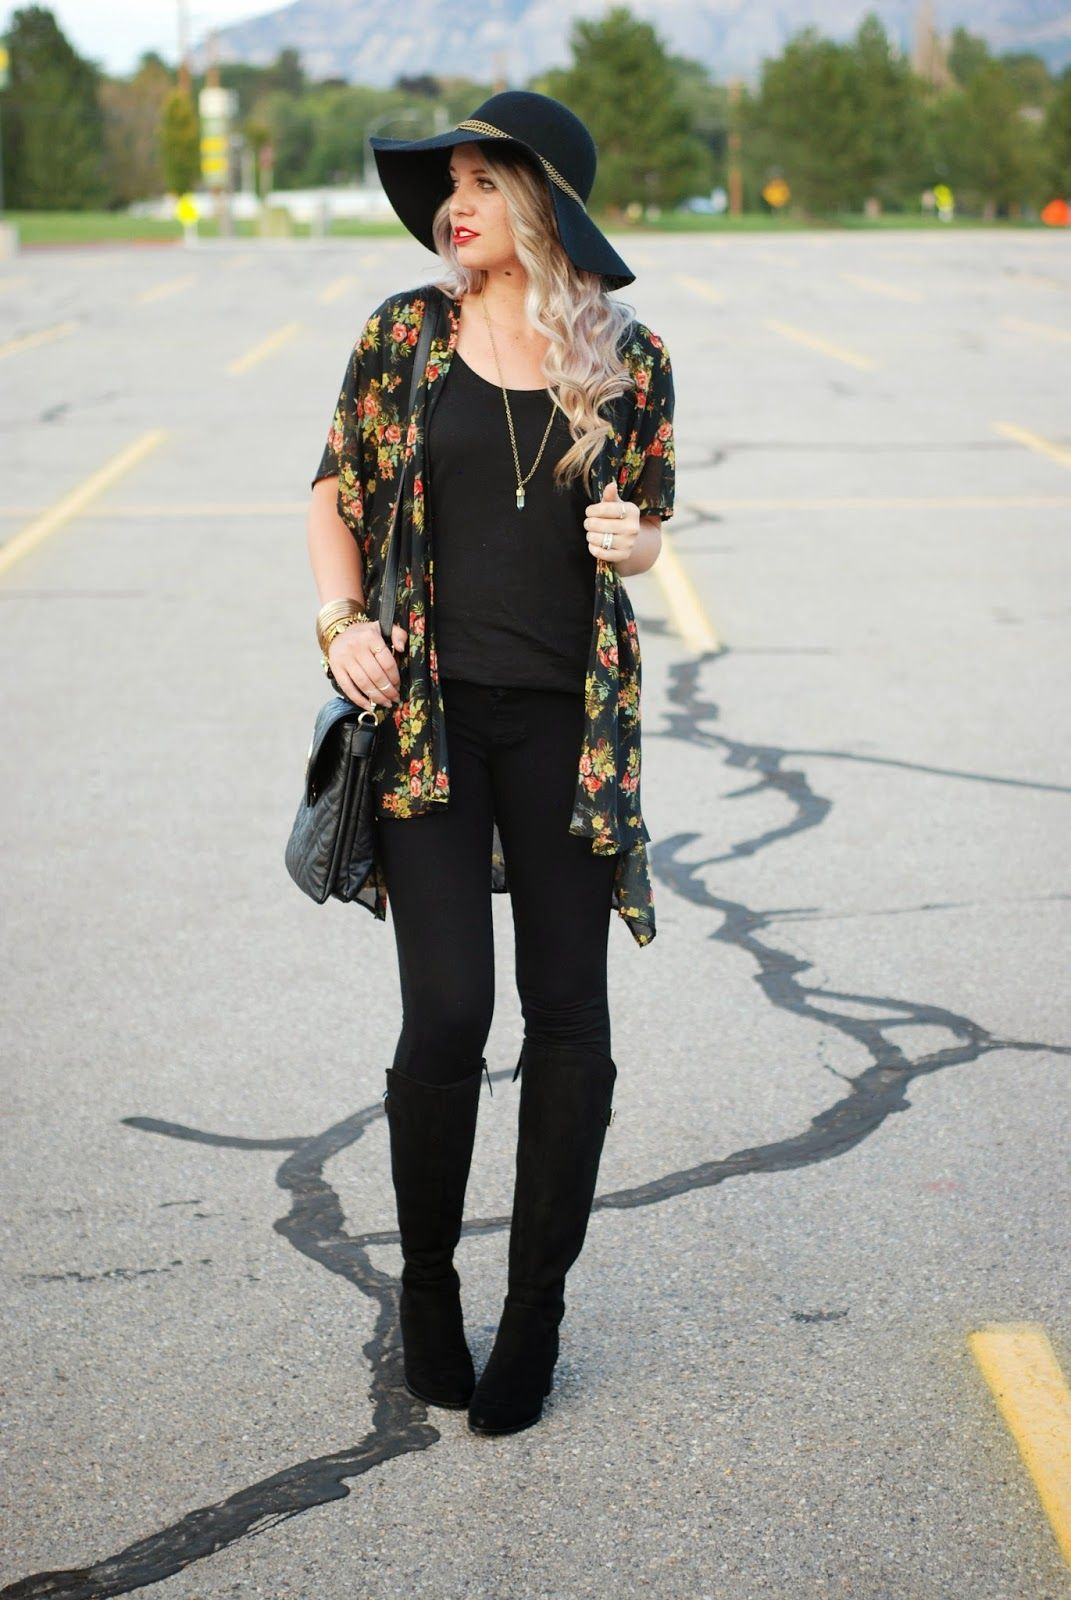 47fcee775 All black with a floral kimono! The perfect fall outfit or spring outfit!  Outfit from The Red Closet Diary. || Instagram: jalynnschroeder